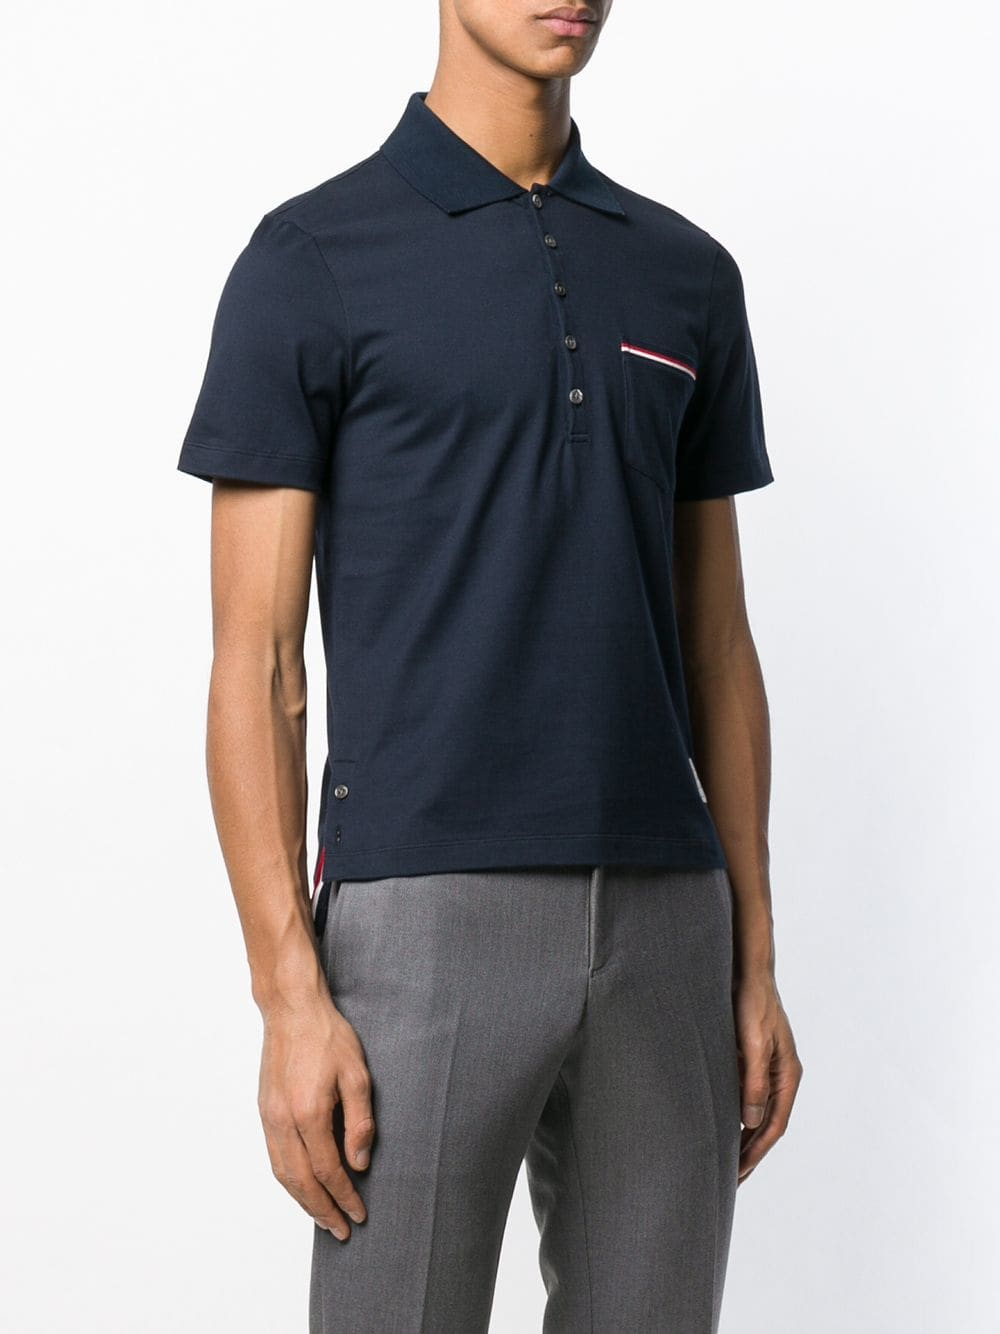 THOM BROWNE MEN SS POCKET POLO IN MEDIUM WEIGHT JERSEY COTTON W/ RWB TIPPING STRIPE